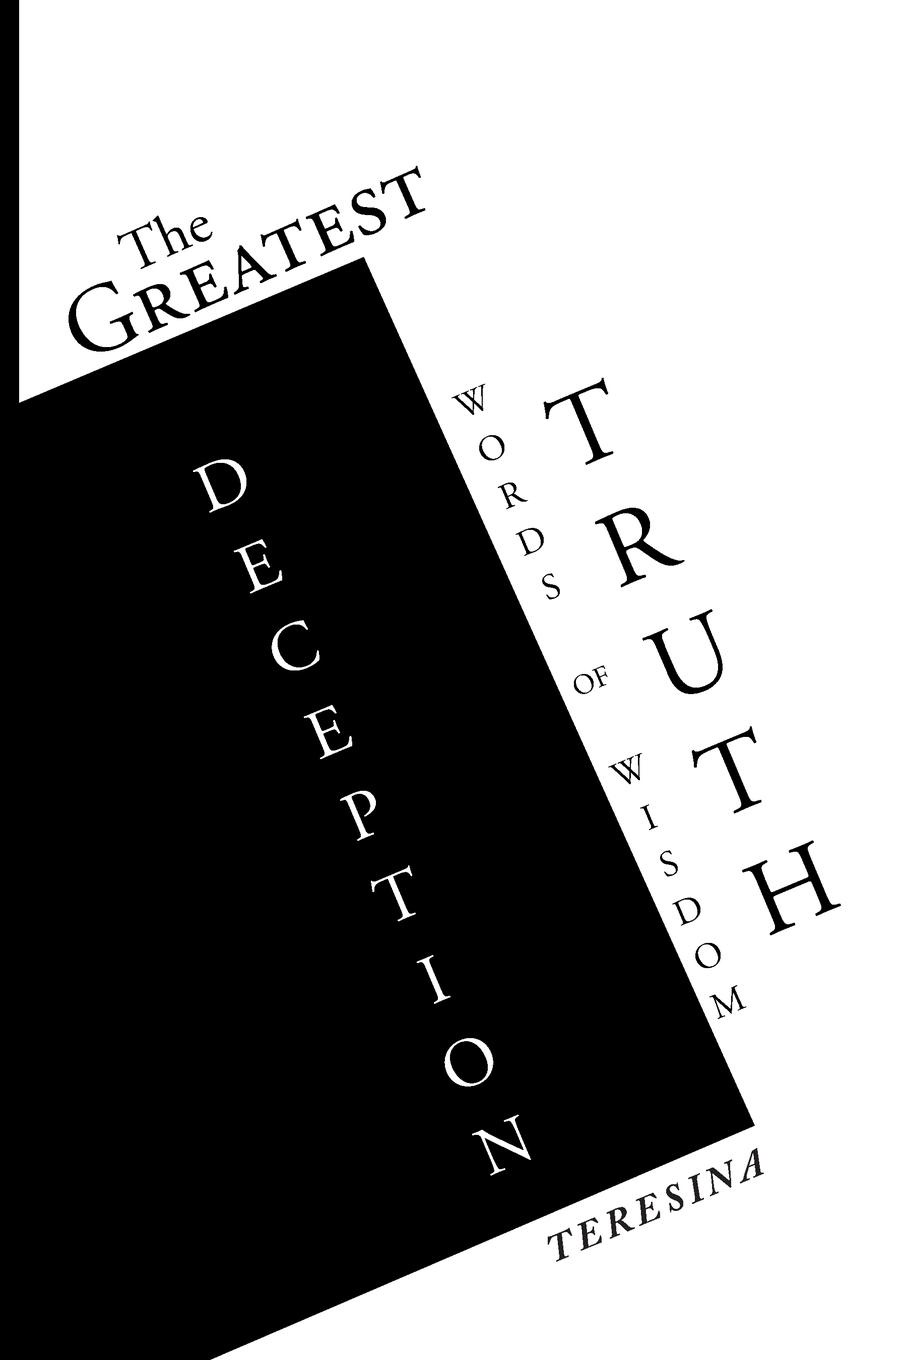 TERESINA The Greatest Truth Deception. Words of Wisdom: Words Of Wisdom the wisdom of unicorns